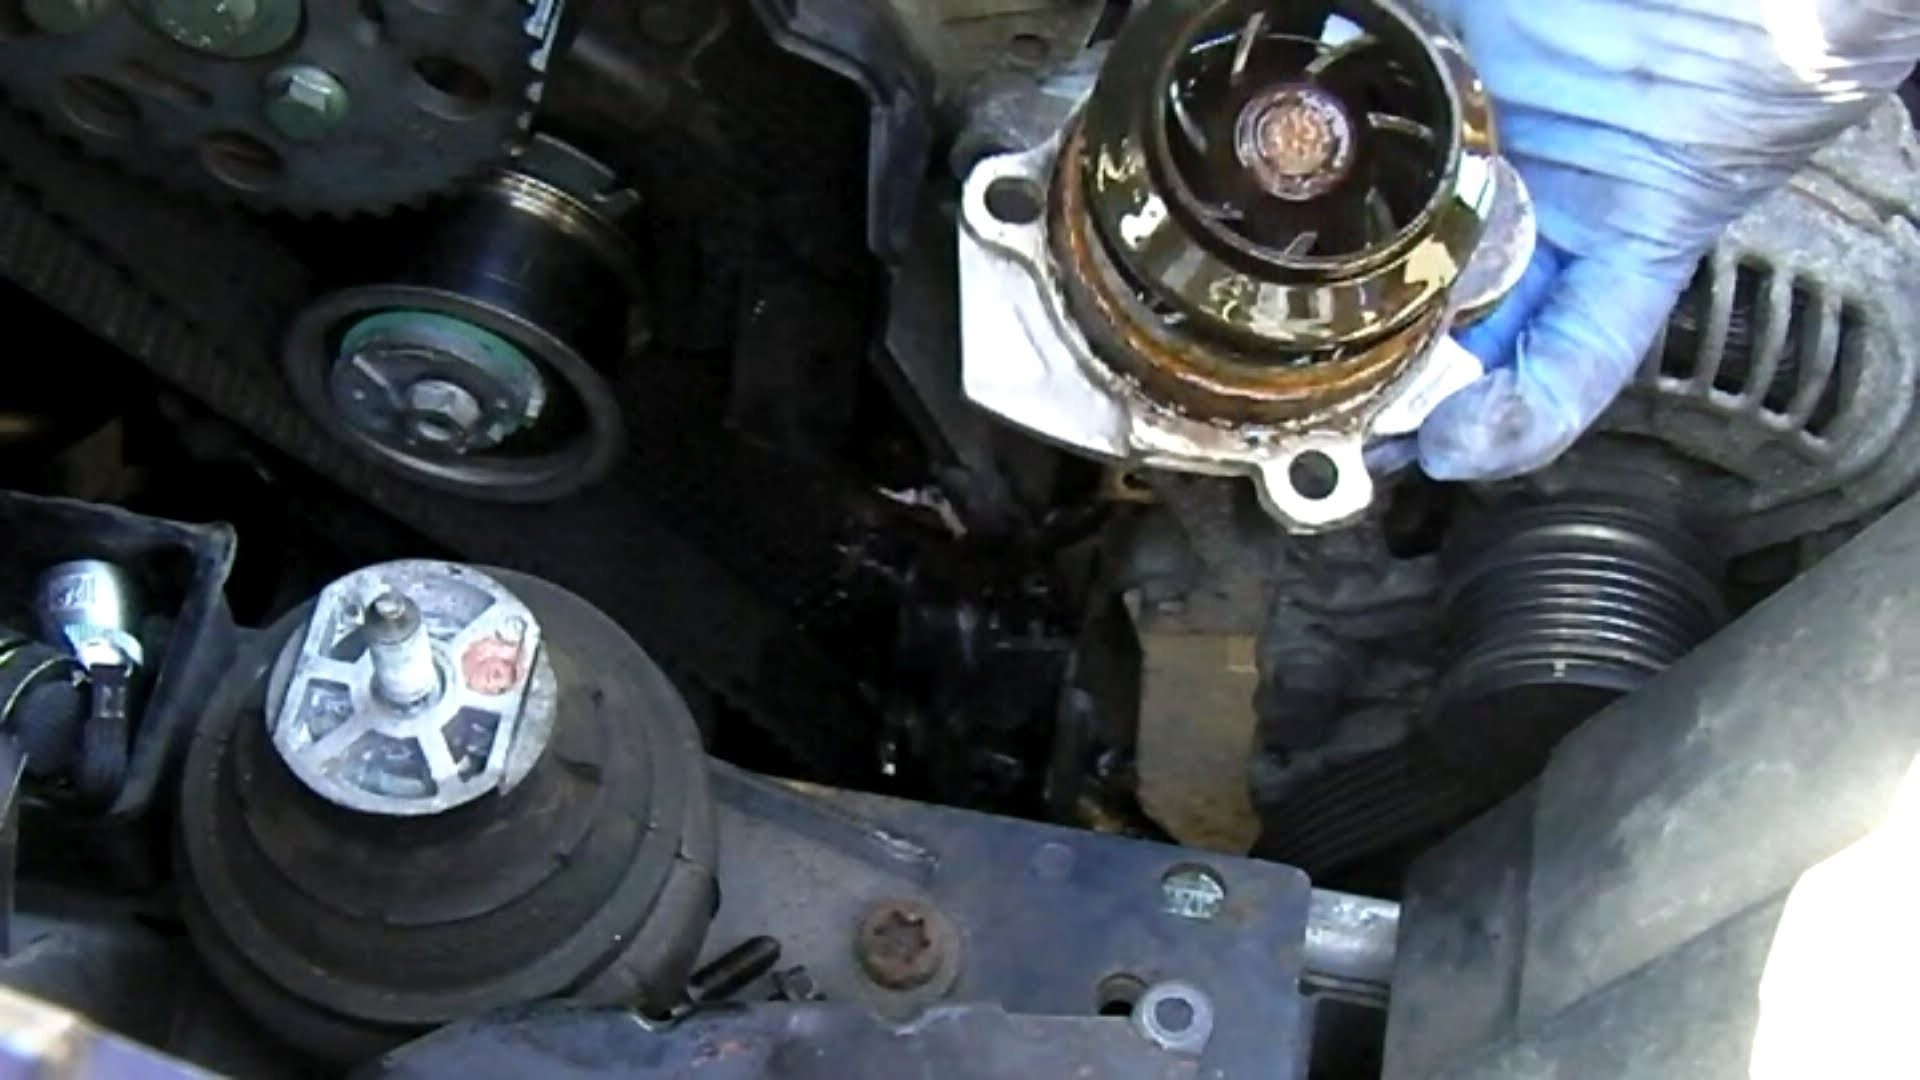 Diagram Of Car Water Pump ford Galaxy 1 9 Tdi Mk2 Water Pump Removal Of Diagram Of Car Water Pump How to Change Engine Timing Belt Dodge Intrepid 3 5l 95 97 Part 2